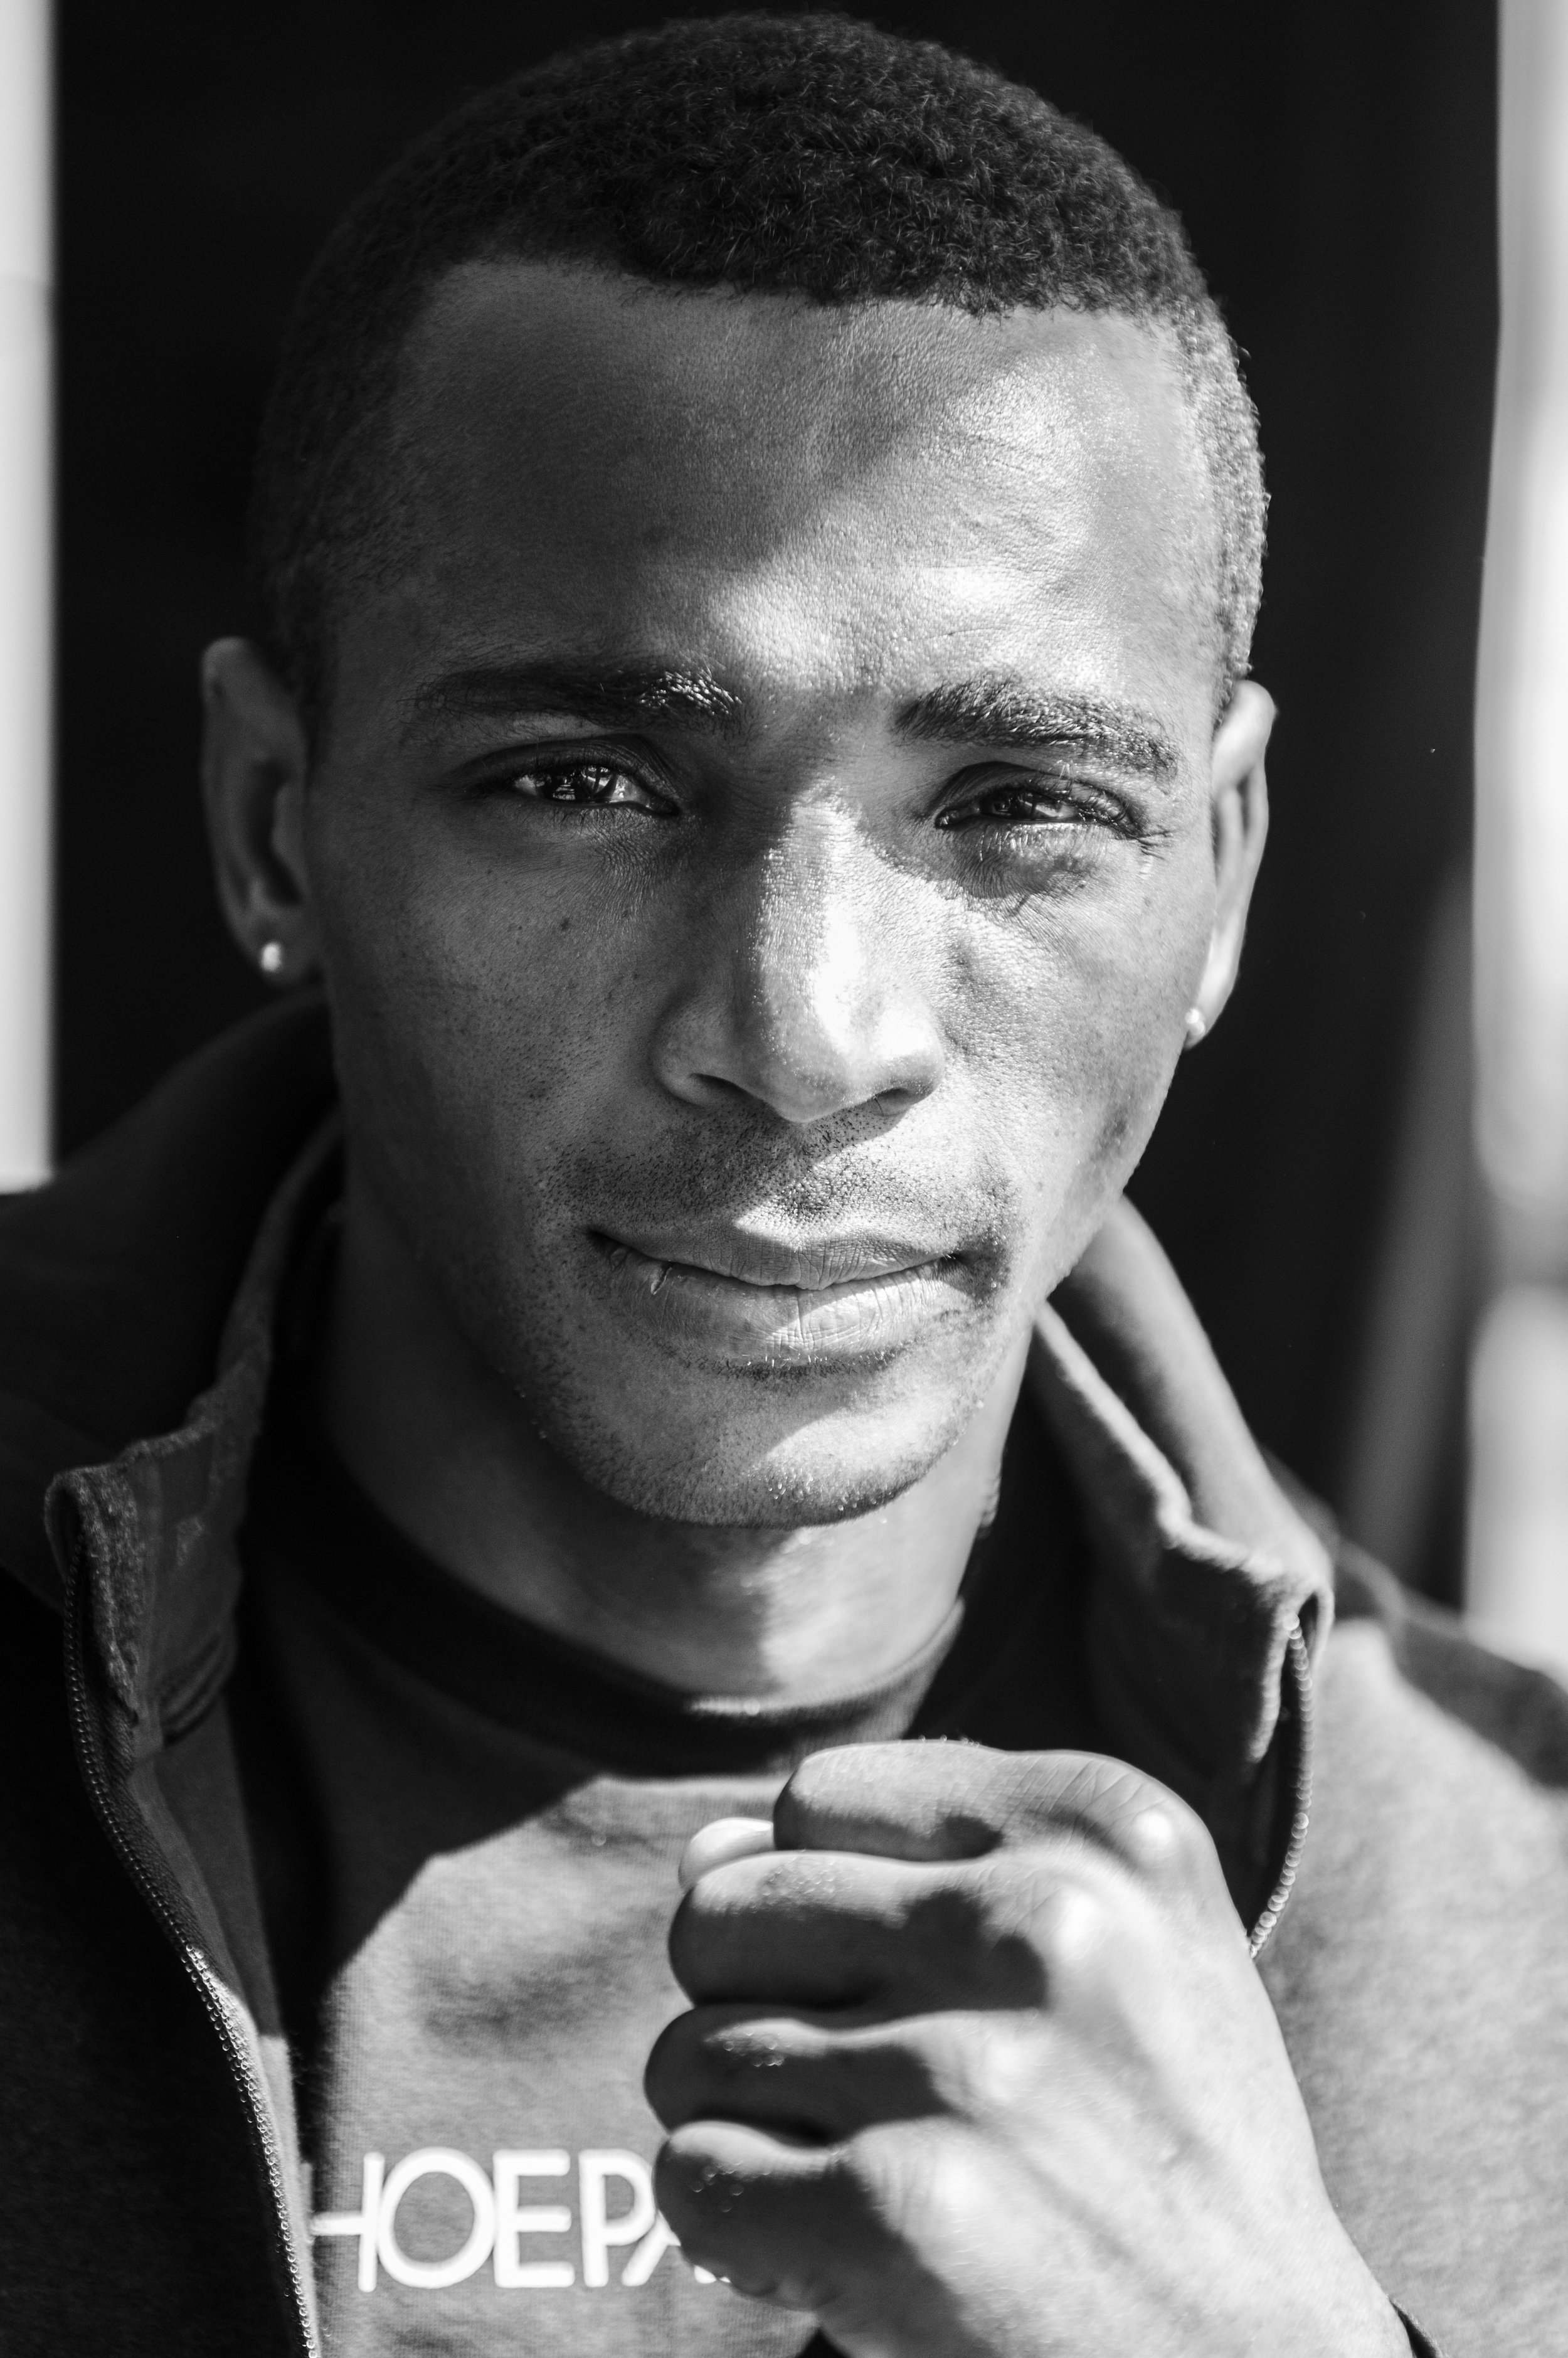 Cuban boxer Erislandy Lara poses for a portrait after his press conference today. Lara defended both his WBA and IBO Light Middleweight titles against Yuri Foreman.